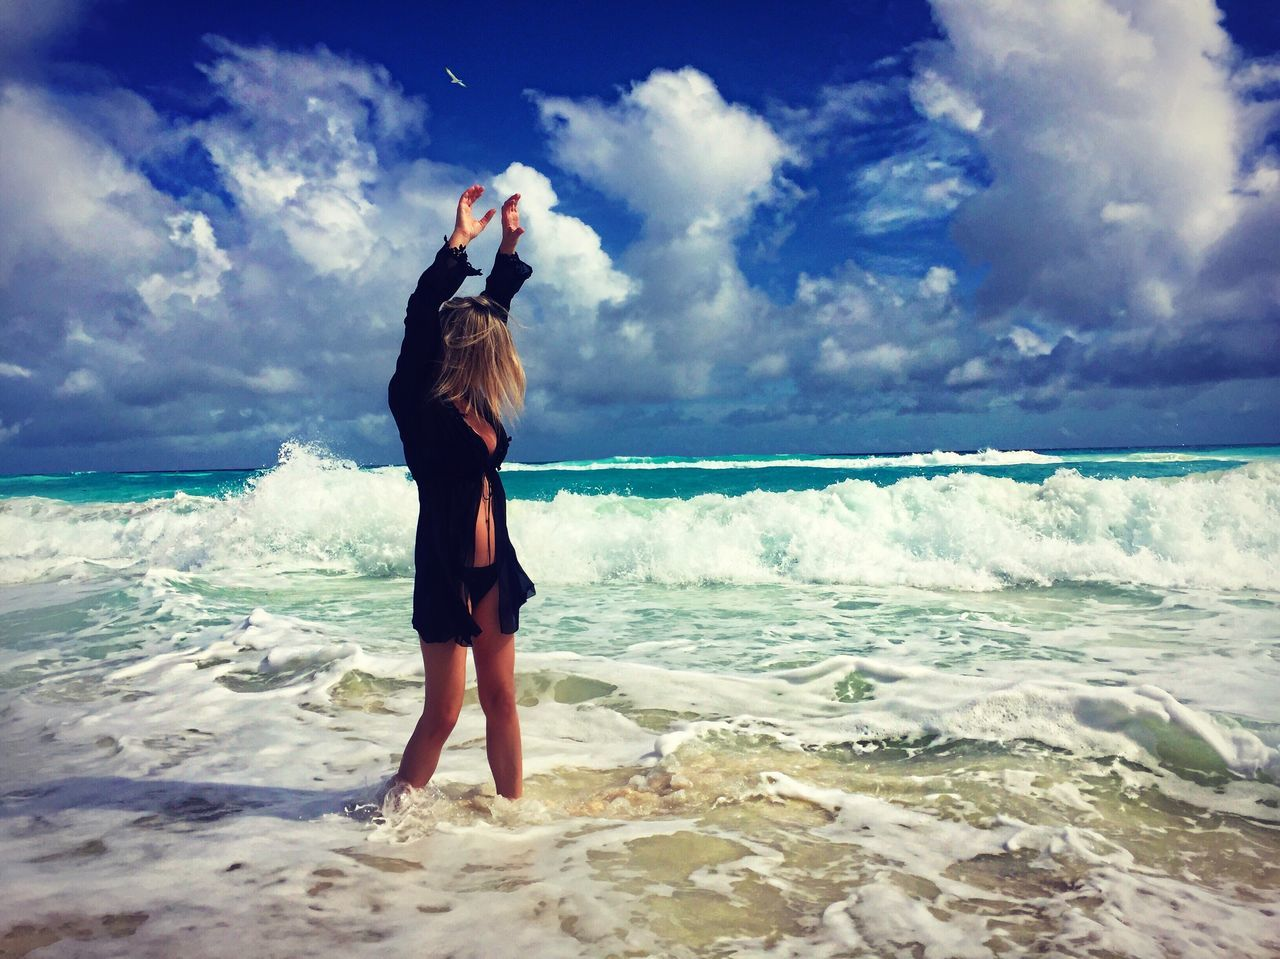 Mexico Cancun Atlantic Ocean Yucatan Mexico Storm Cloud Storm Adventure Sea Ocean Full Length Water Beach Sky Nature Standing Beauty In Nature Vacations Scenics Women Horizon Over Water Wave Travel Energy Determination Vacations